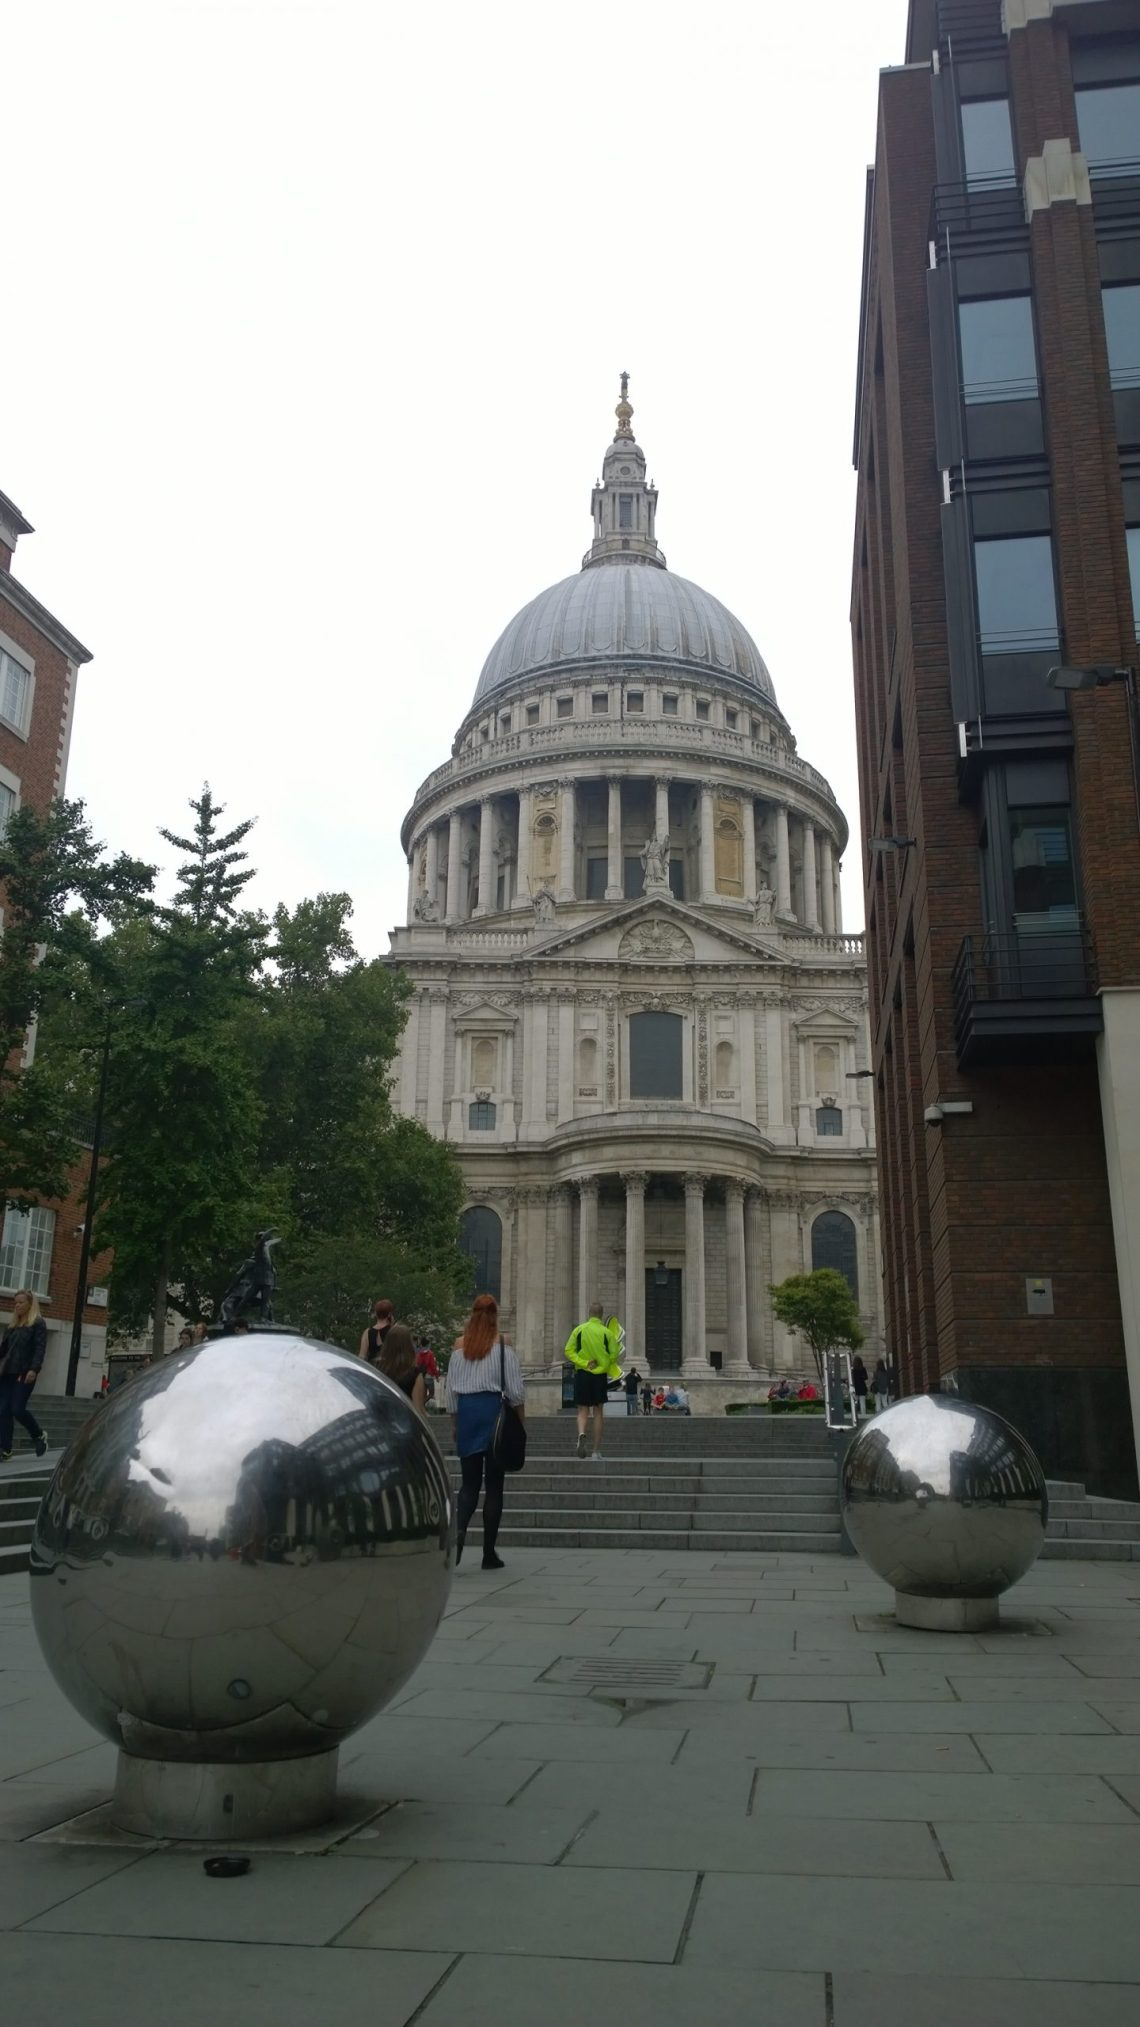 Mirrored sculptures near St. Pauls